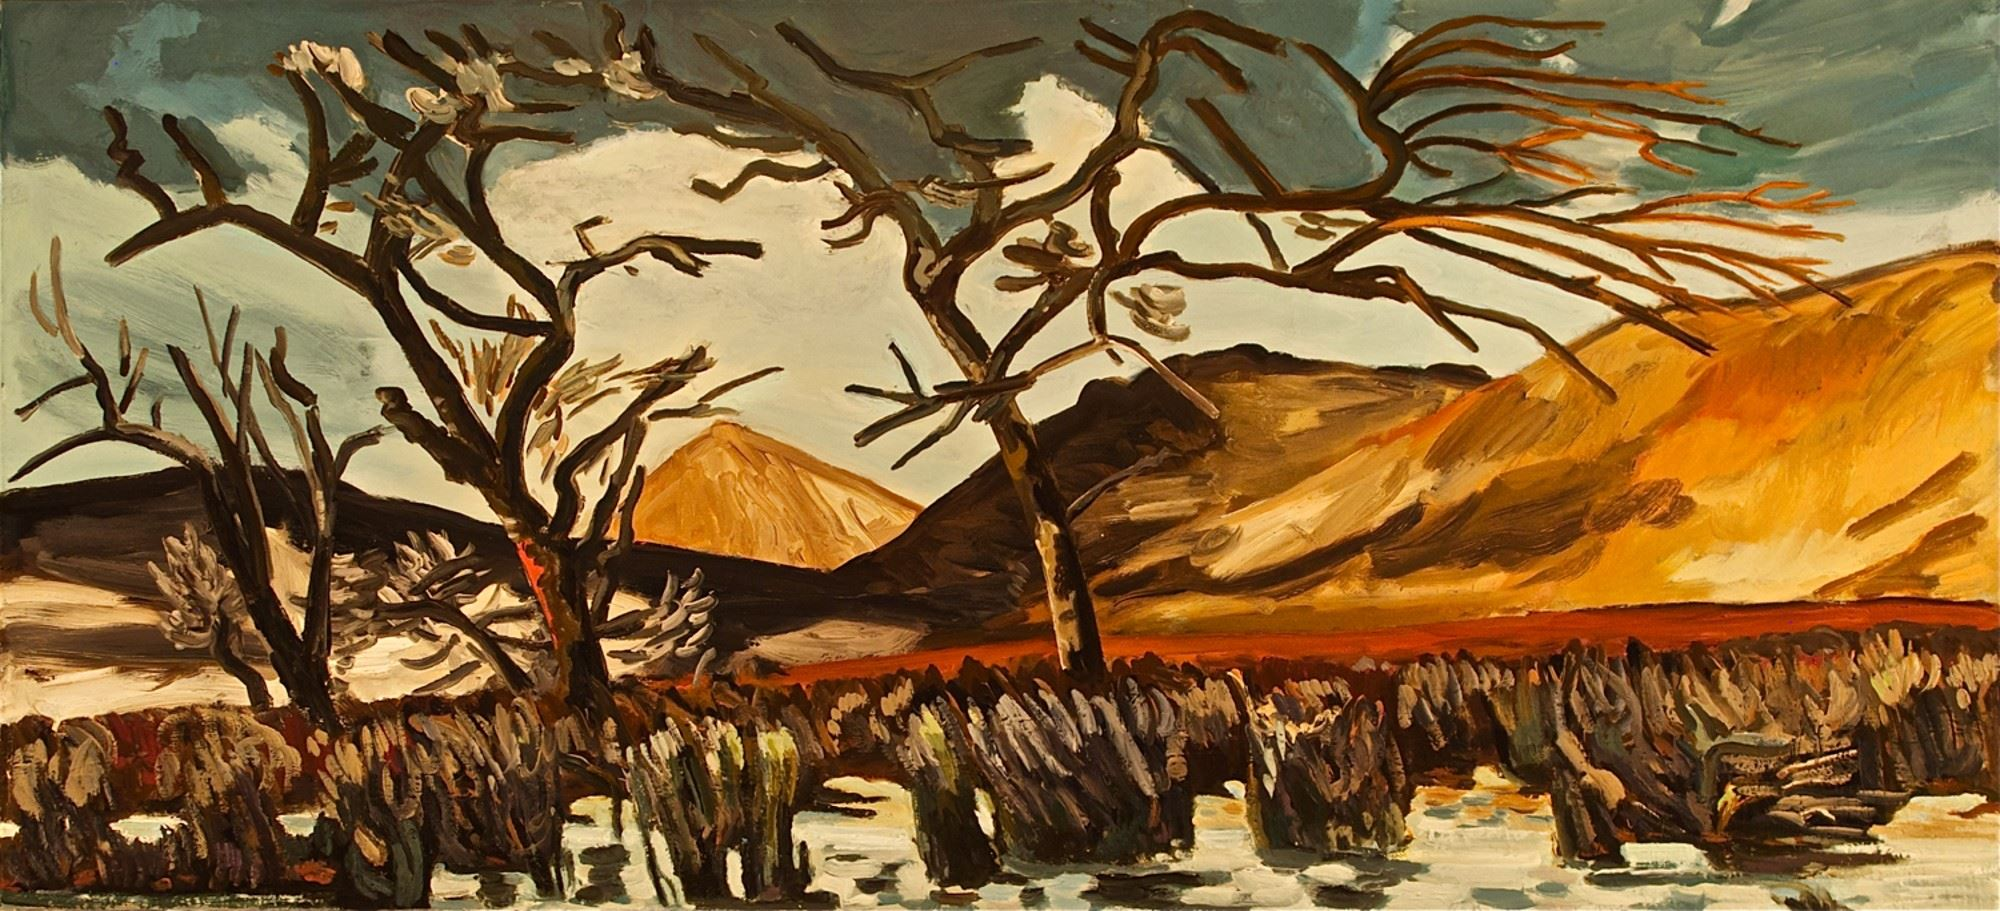 A painting of a desert landscape with bare trees surrounded by dark brush.  The bare hillside is int eh background.